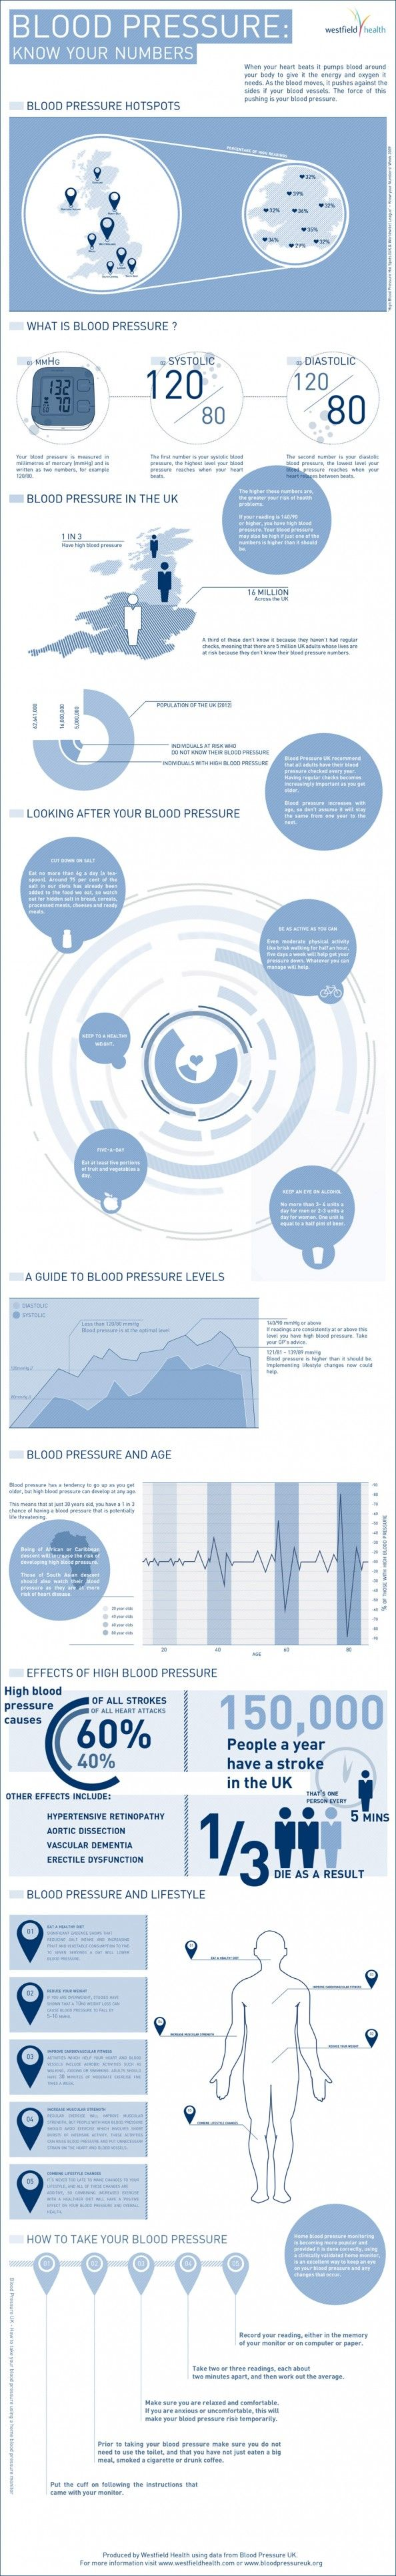 Best 25 what is blood pressure ideas on pinterest whats high may is national blood pressure month as well as national stroke awareness month blood pressure important to overall health it adds an important customer nvjuhfo Images